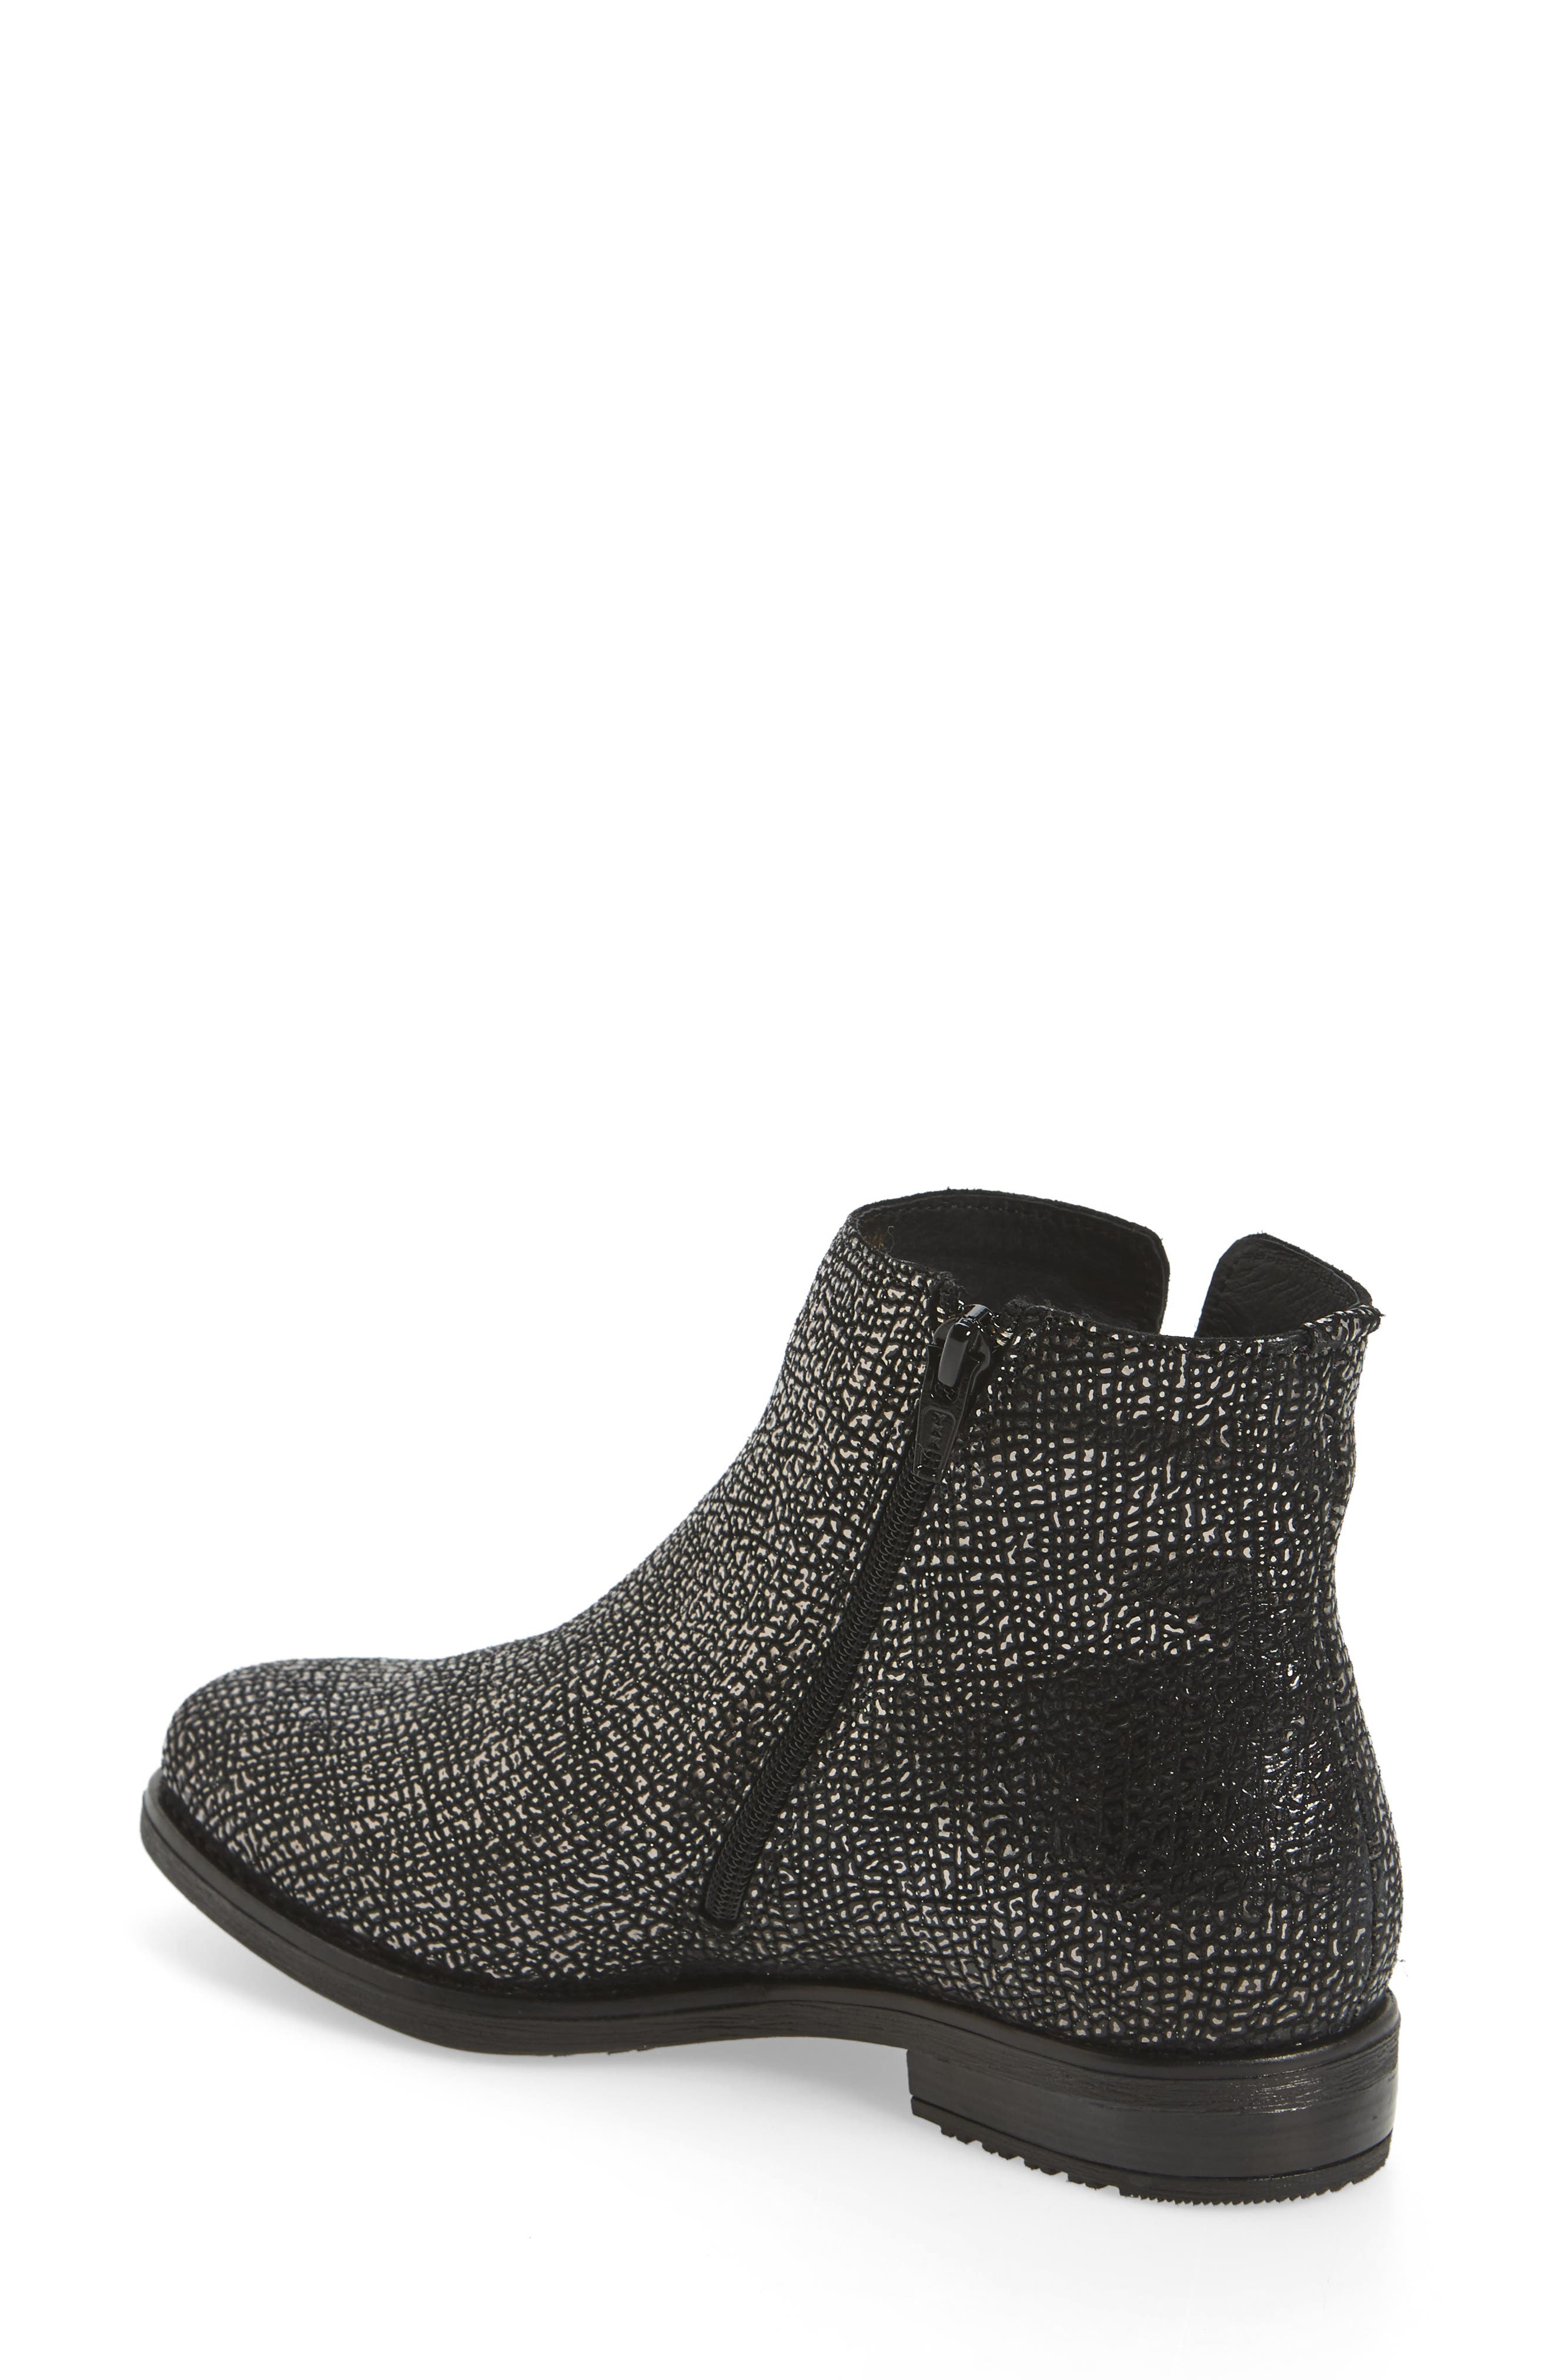 Sheridan Waterproof Bootie,                             Alternate thumbnail 2, color,                             001